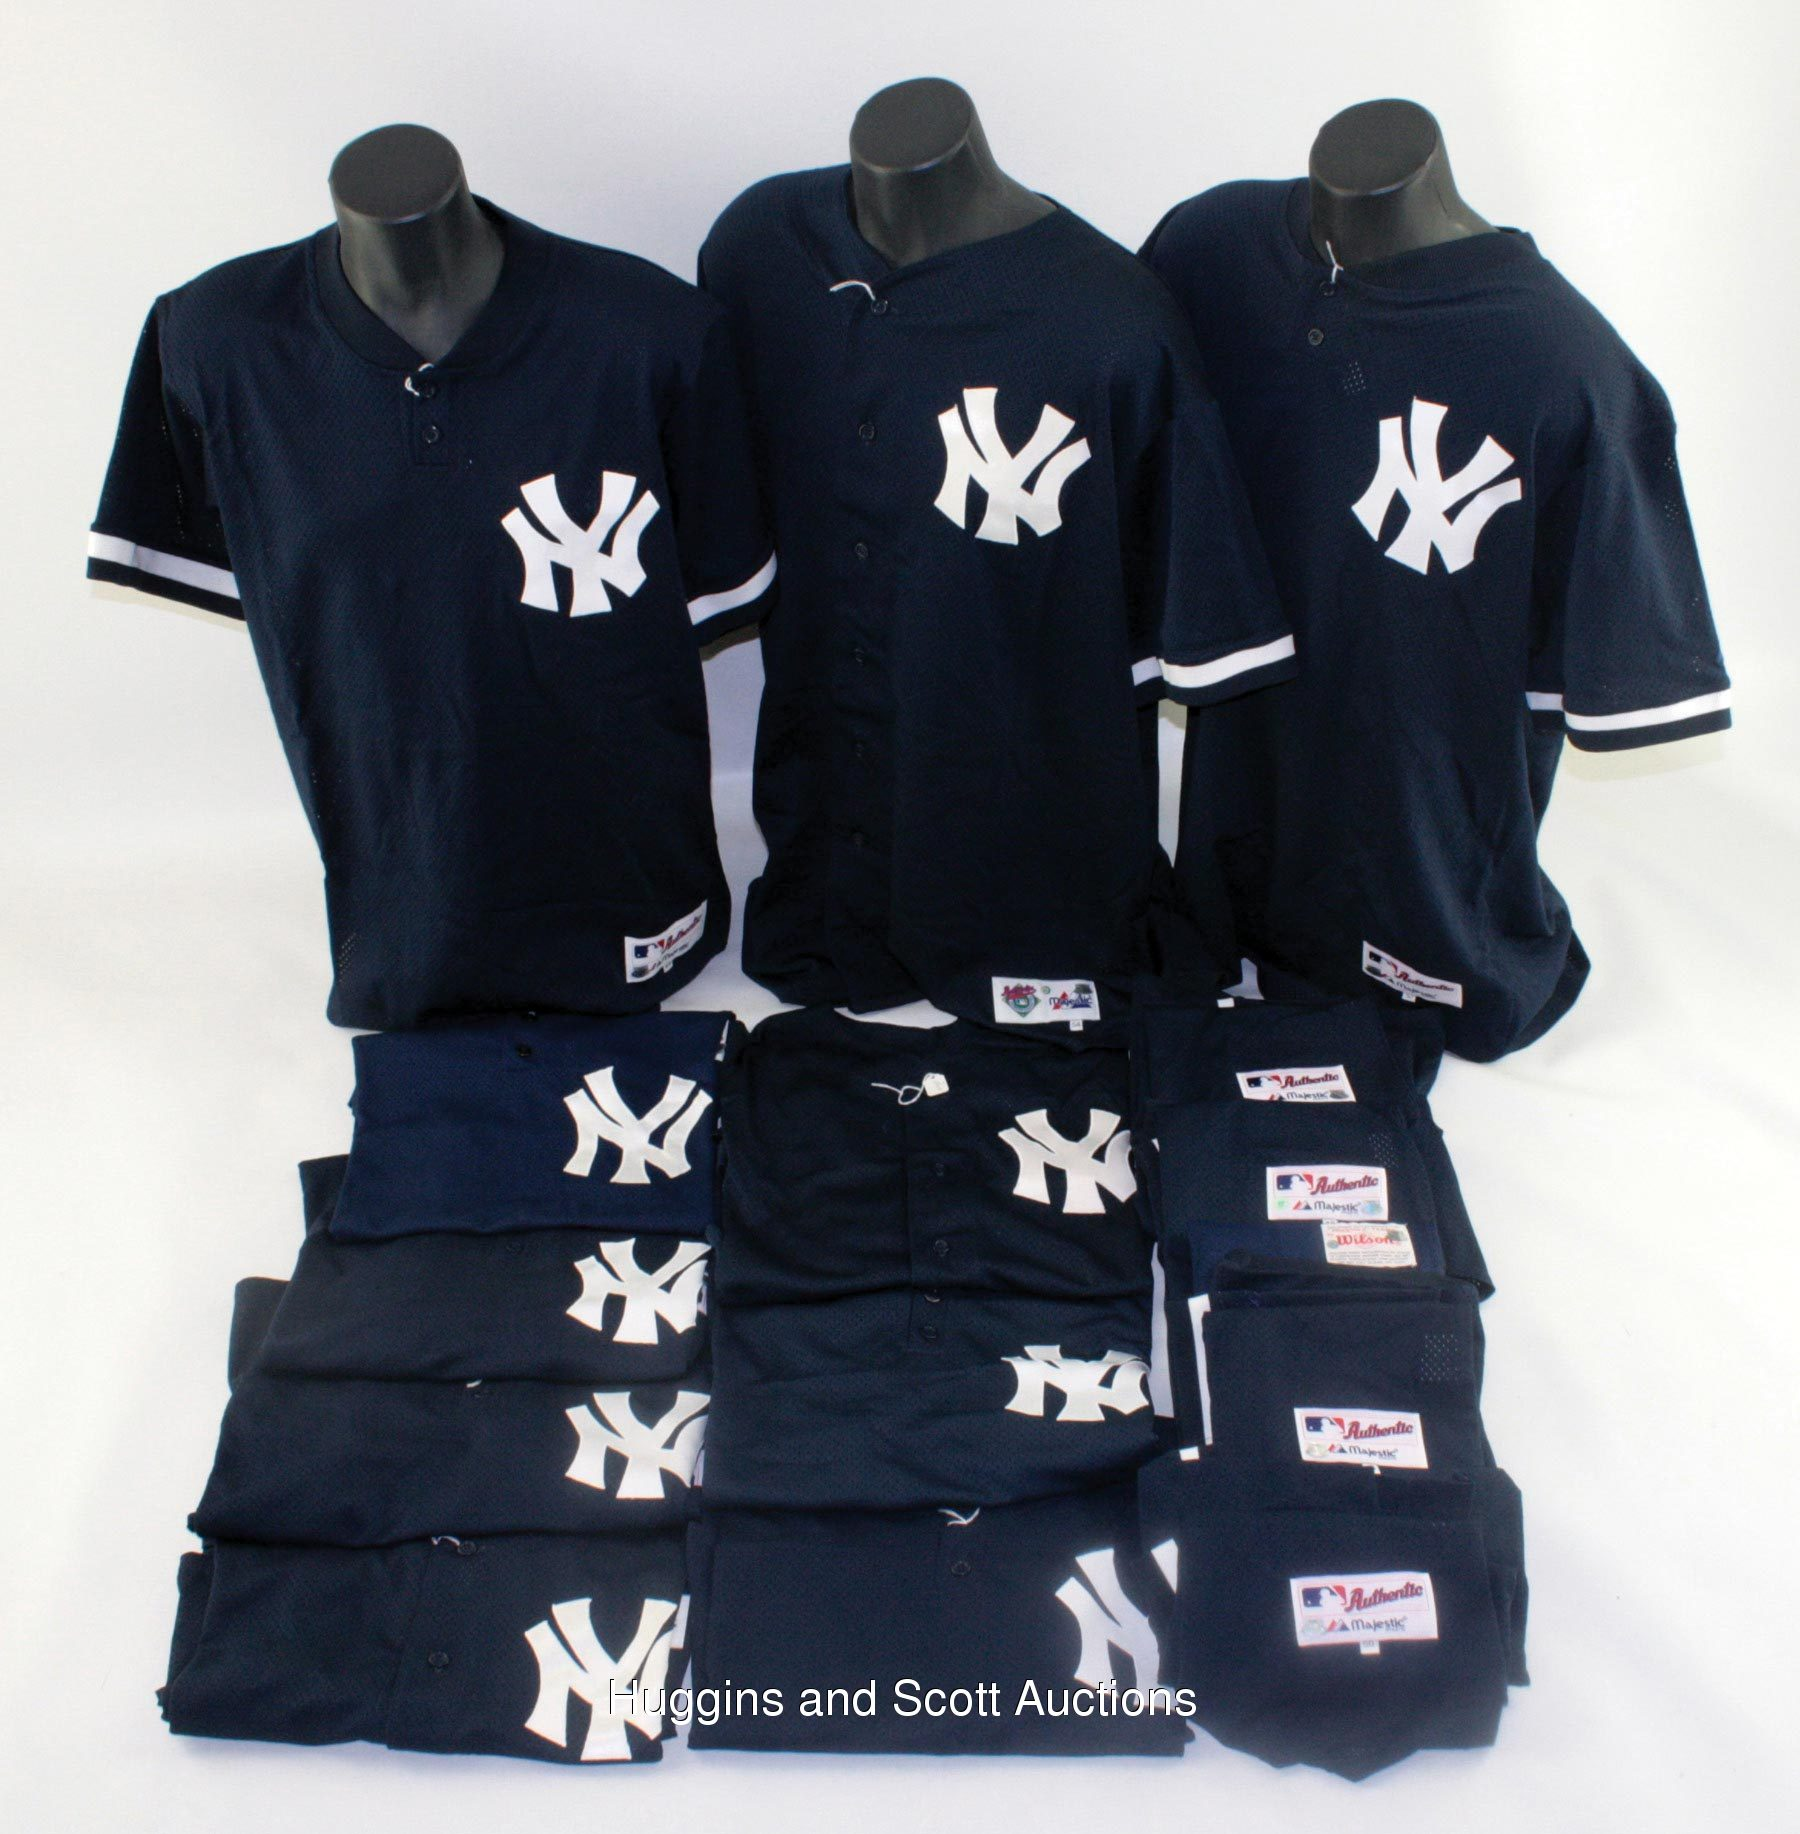 on sale 7c6d5 d3e07 15) New York Yankees Batting Practice and Spring Training ...